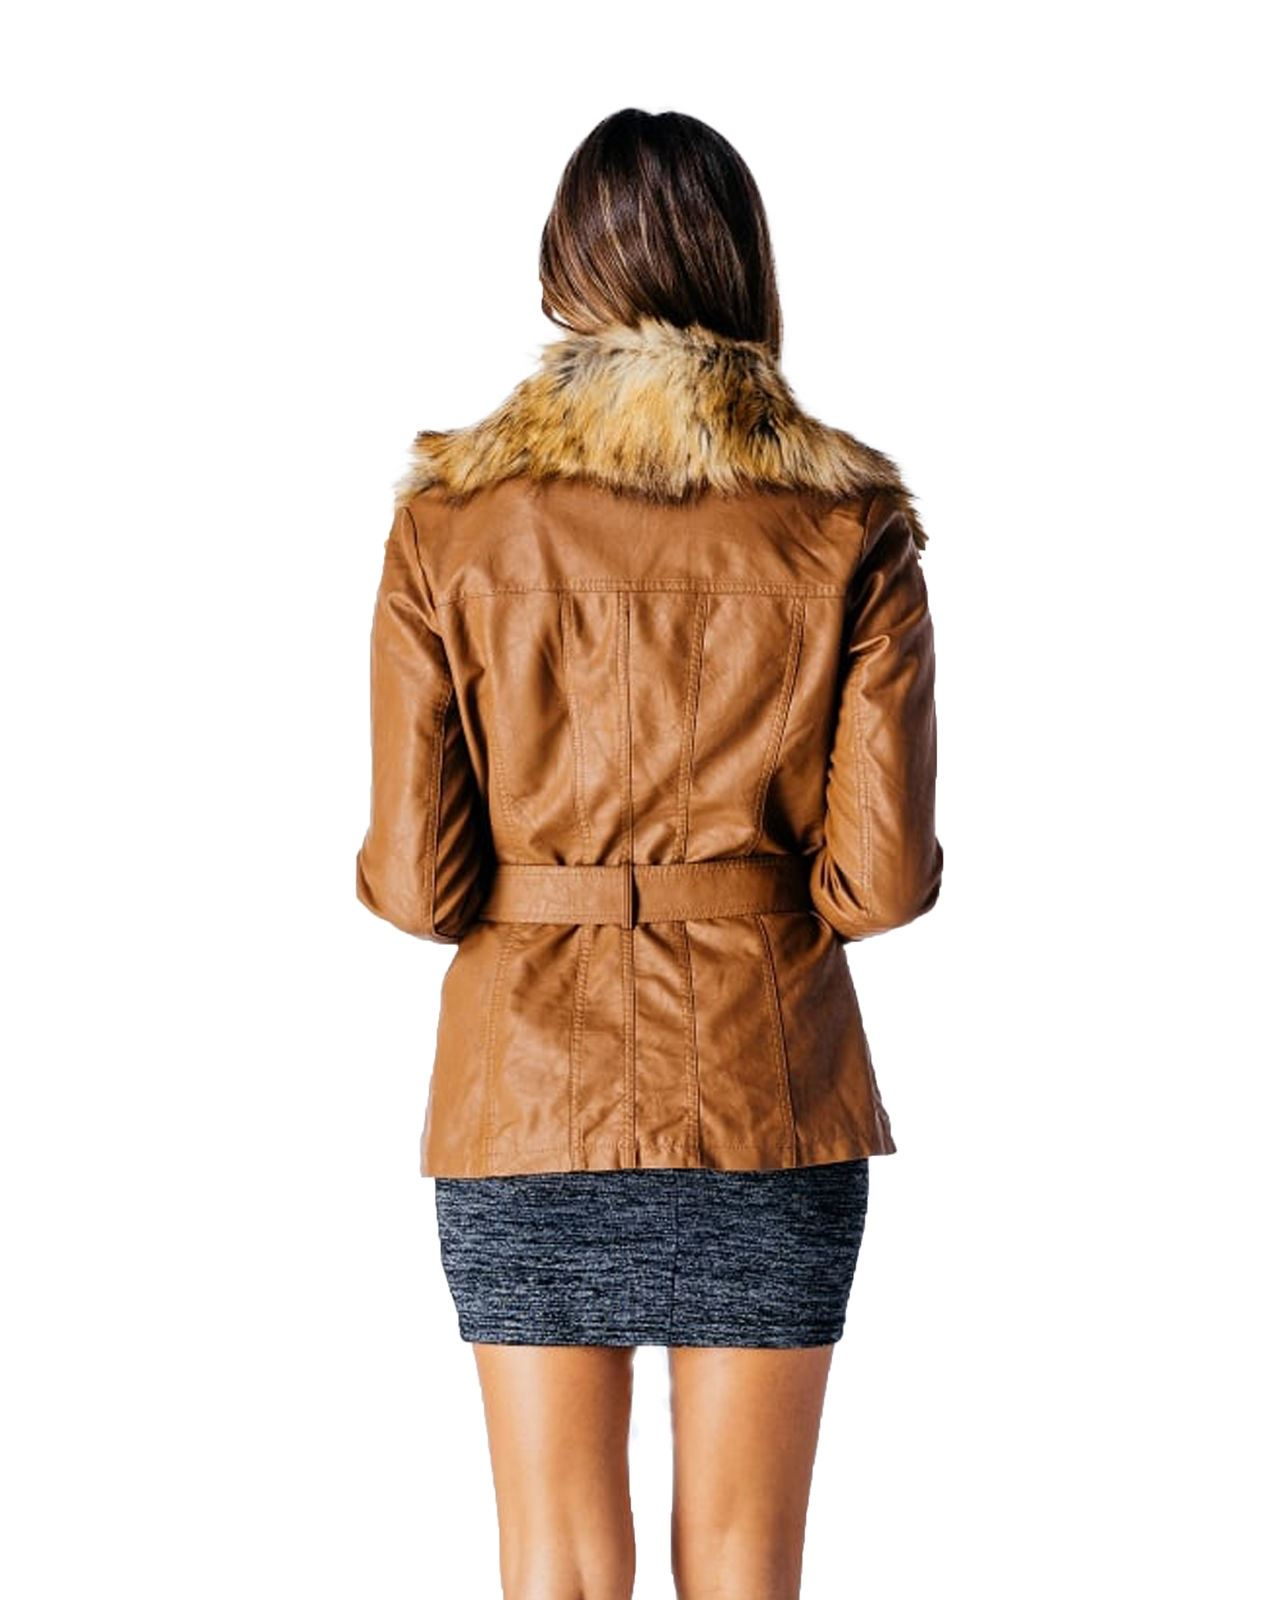 fd41ef2f8 Details about Ladies Womens Faux Fur Collar PU Leather Bomber Bicker Jacket  Coat Top Size 8-14